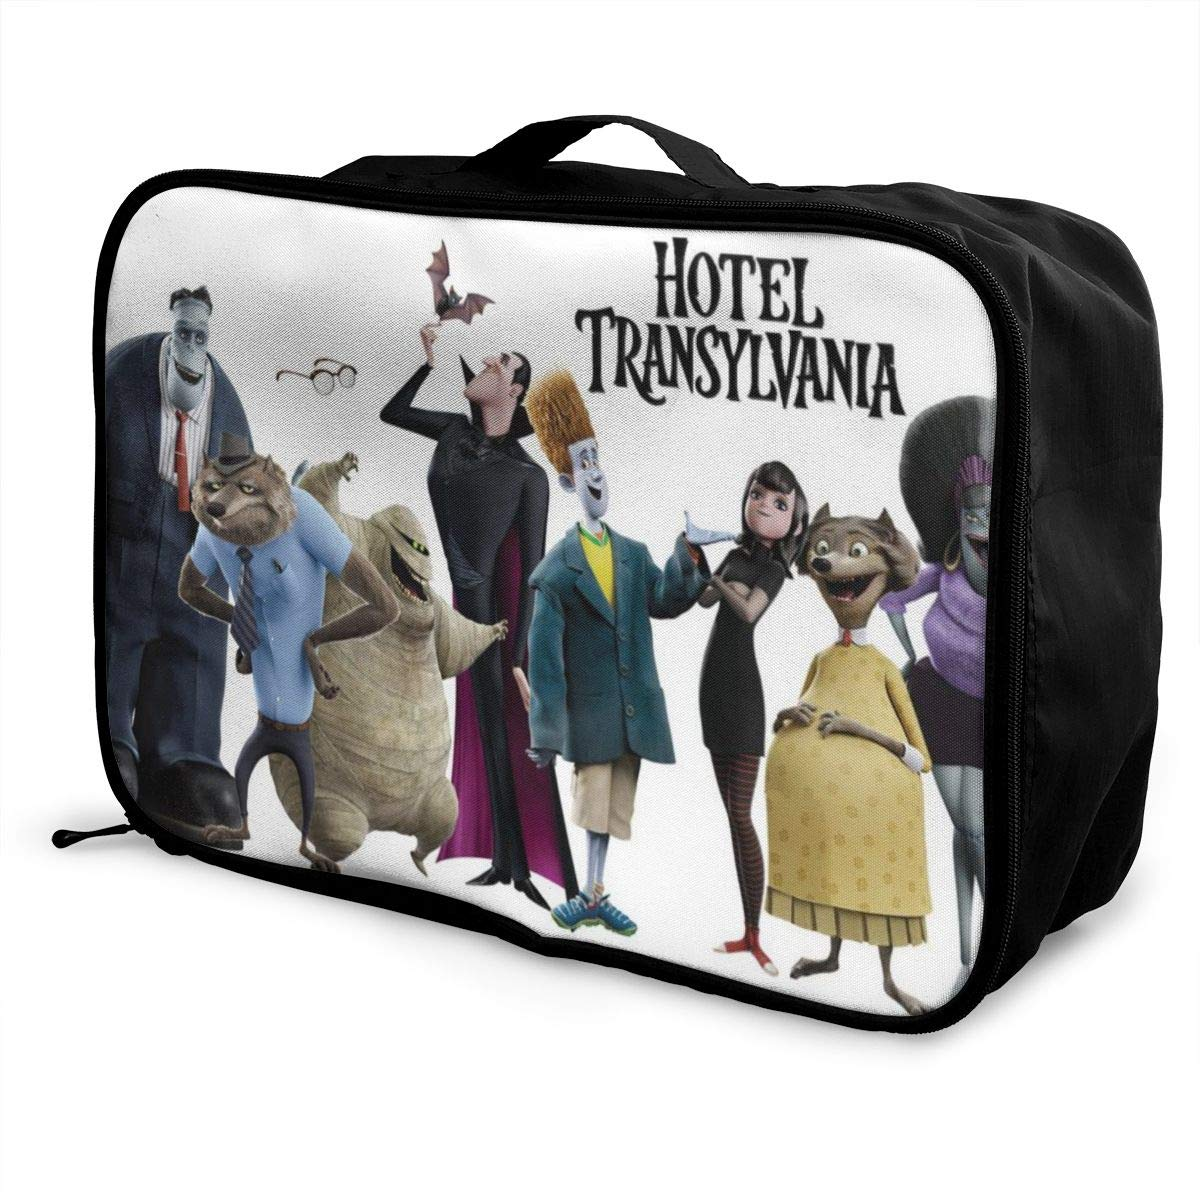 Hotel Transylvania Customize Casual Portable Travel Bag Suitcase Storage Bag Luggage Packing Tote Bag Trolley Bag